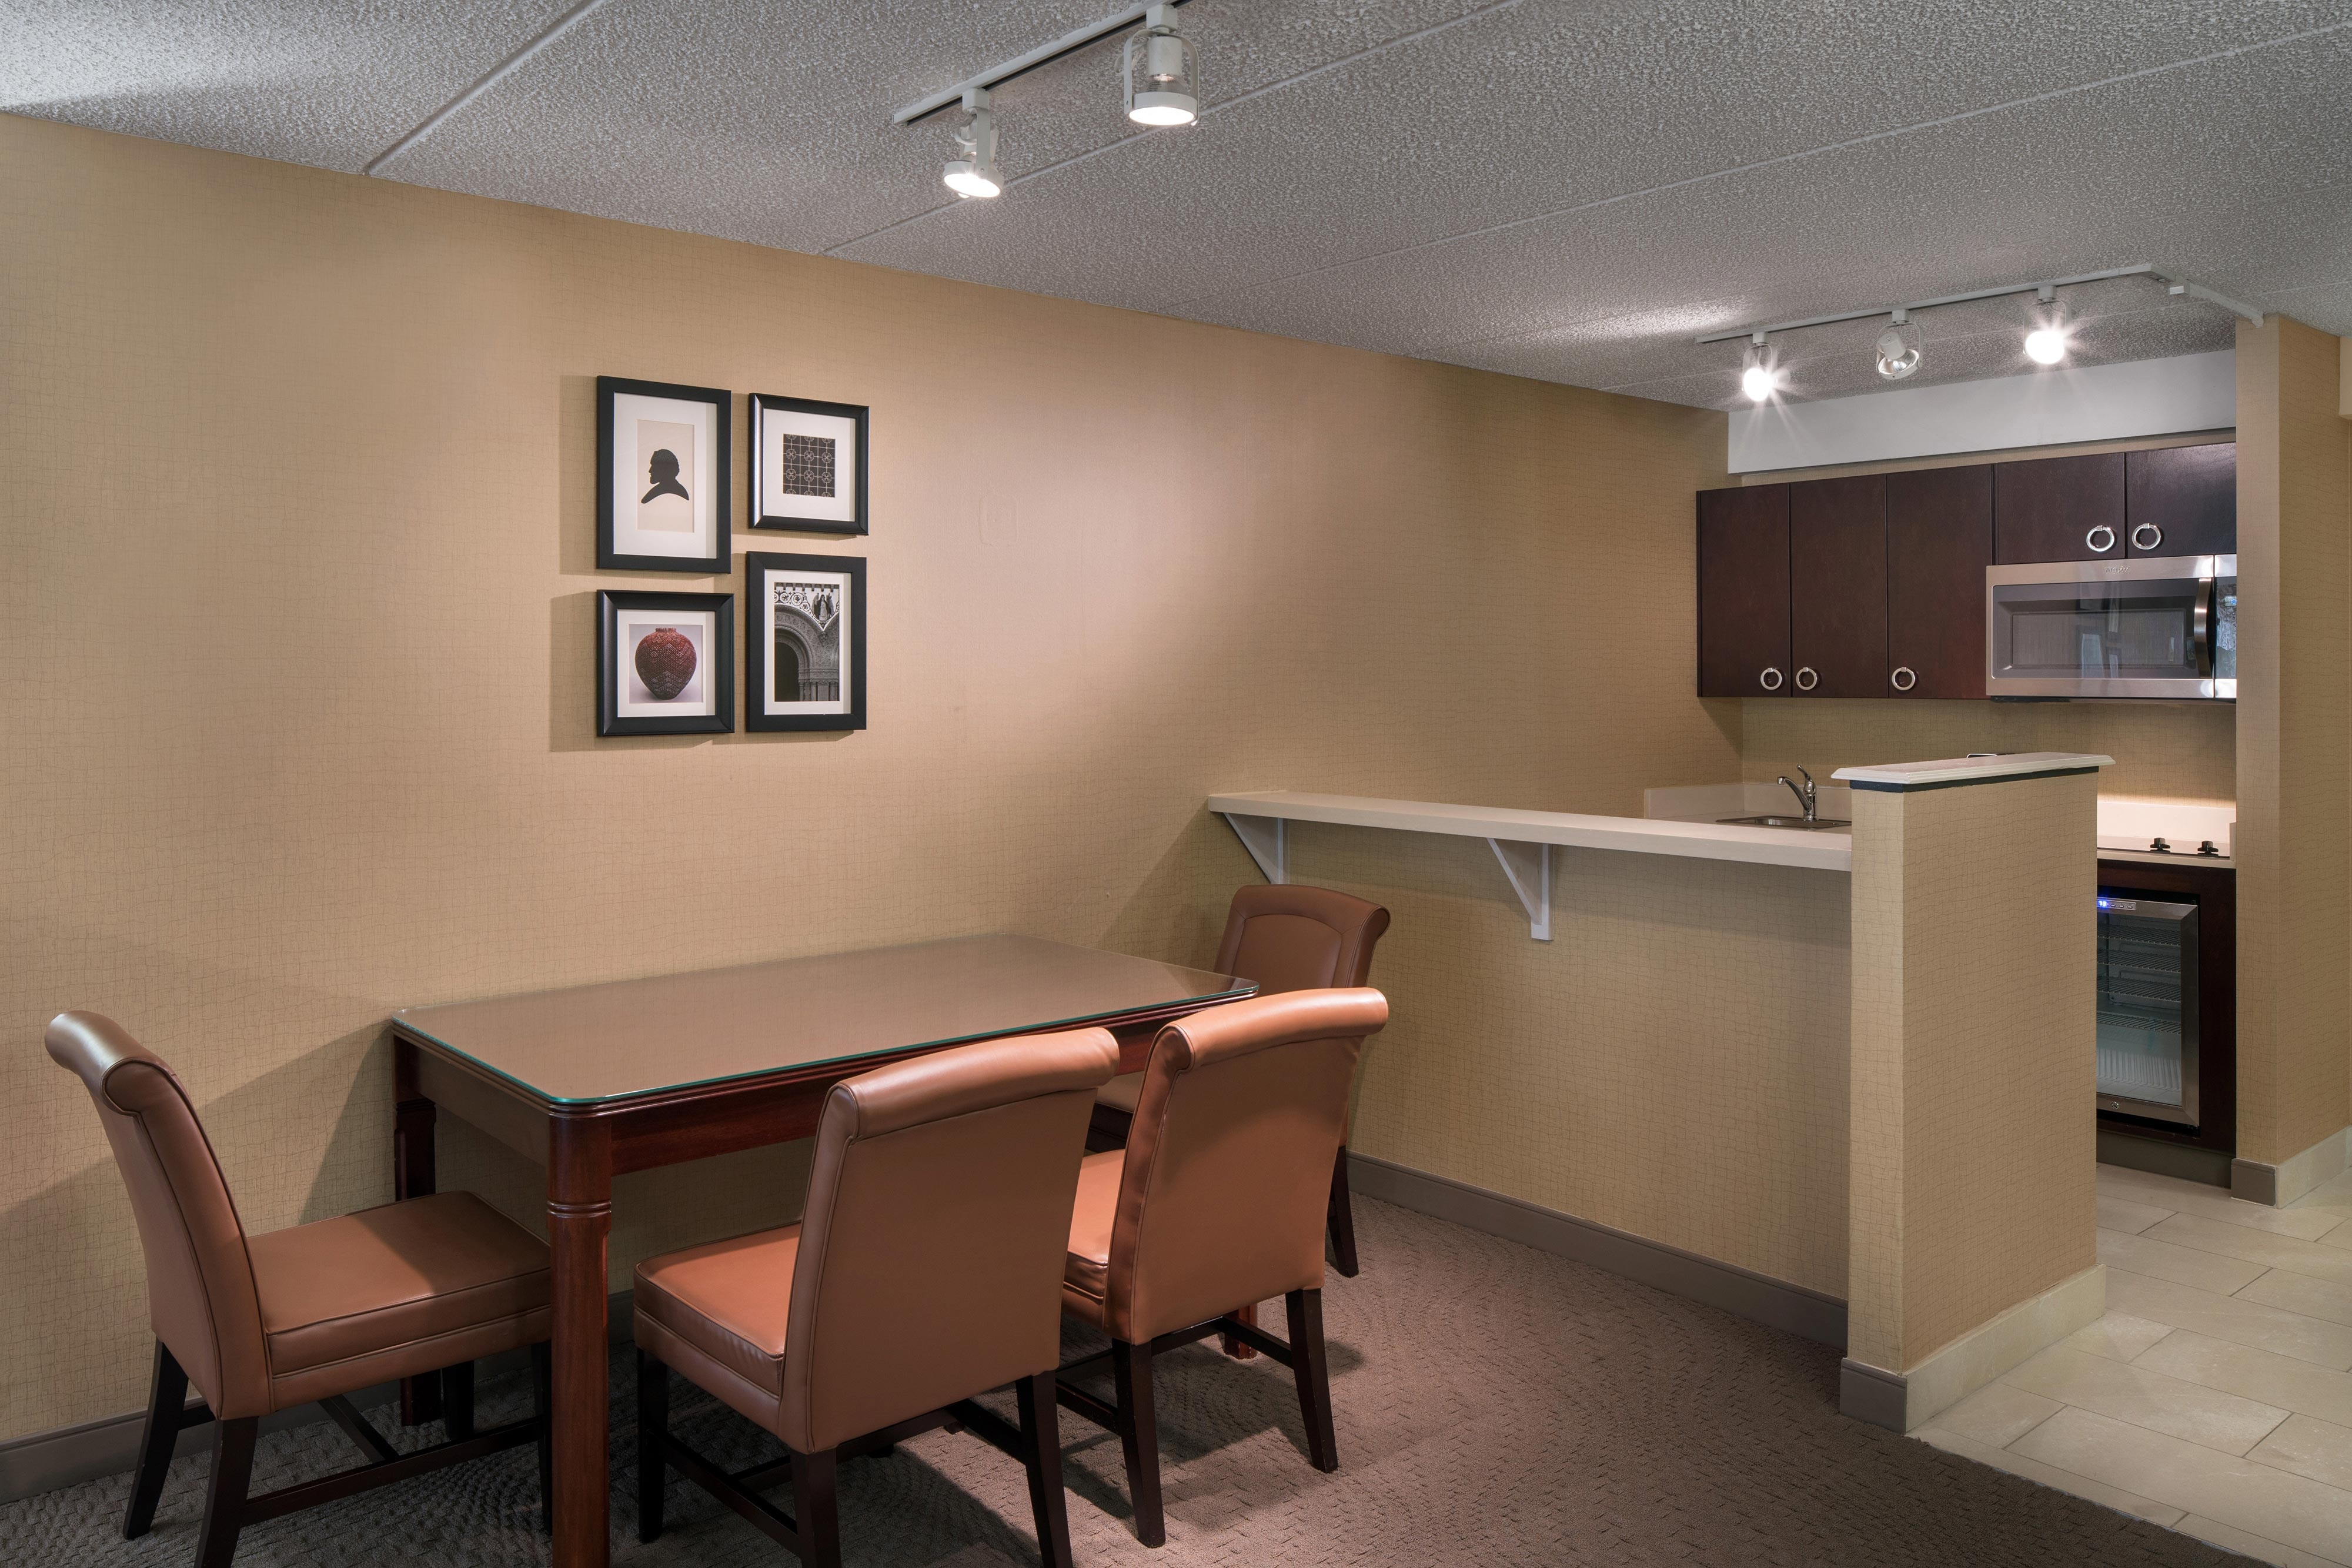 Hospitality Suite - Kitchenette And Dining Room